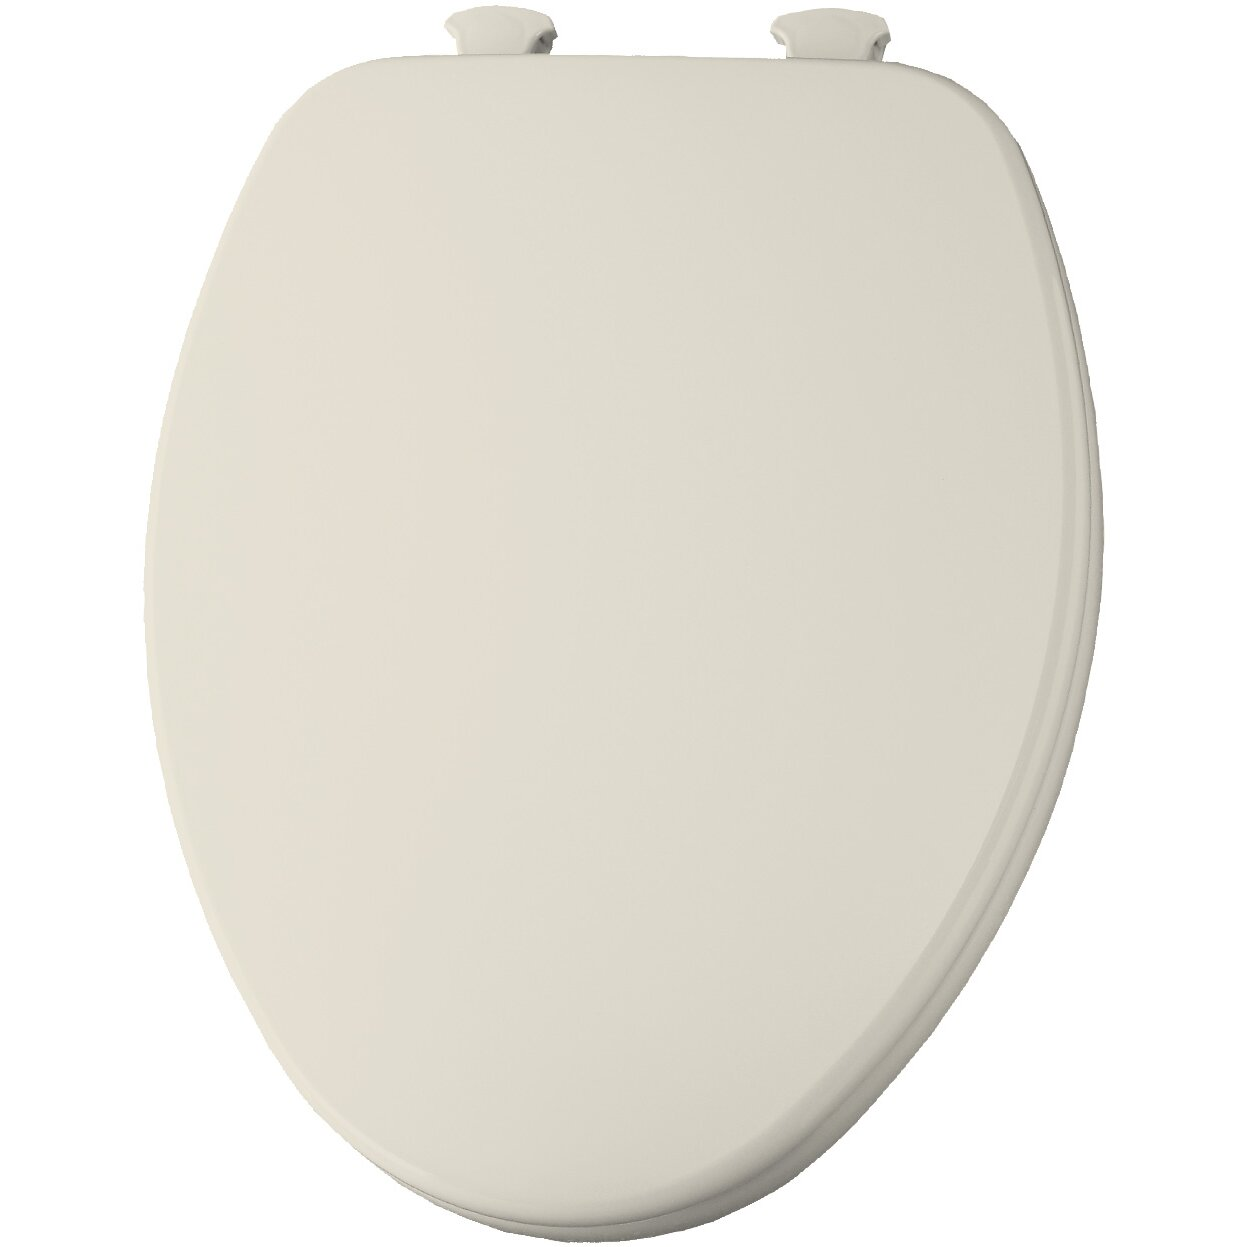 Bemis Toilet Seats Color Chart Bemis Toilet Seats Color Chart - Bemis toilet seat colors